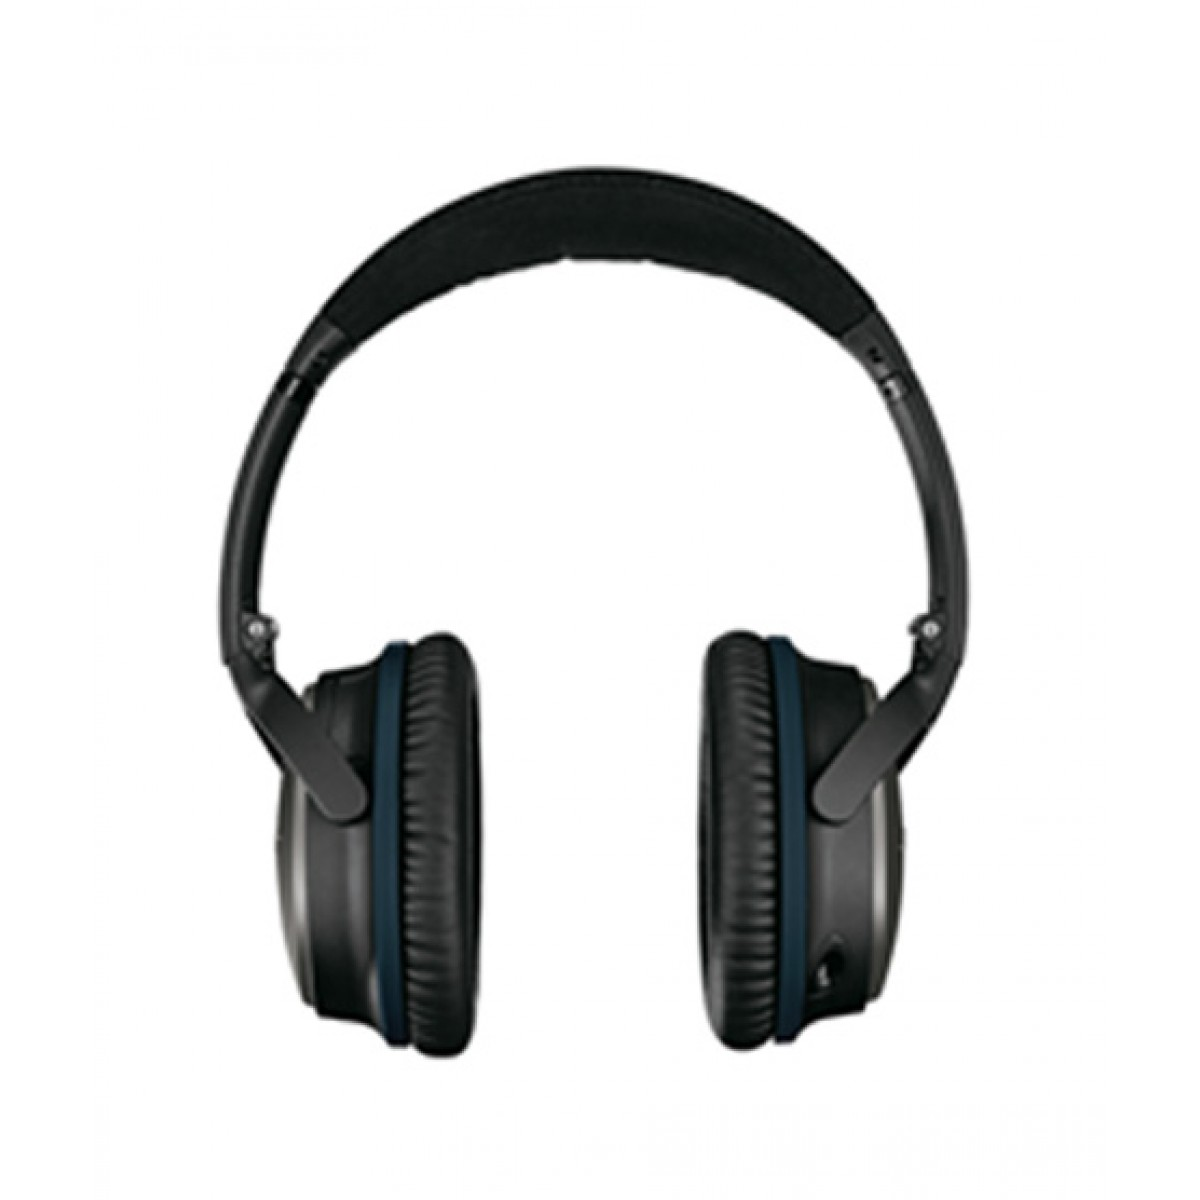 409d659b62b Bose QuietComfort 25 Headphones Price in Pakistan | Buy Bose QC25 Acoustic  Noise Headphones Black For Apple Devices | iShopping.pk